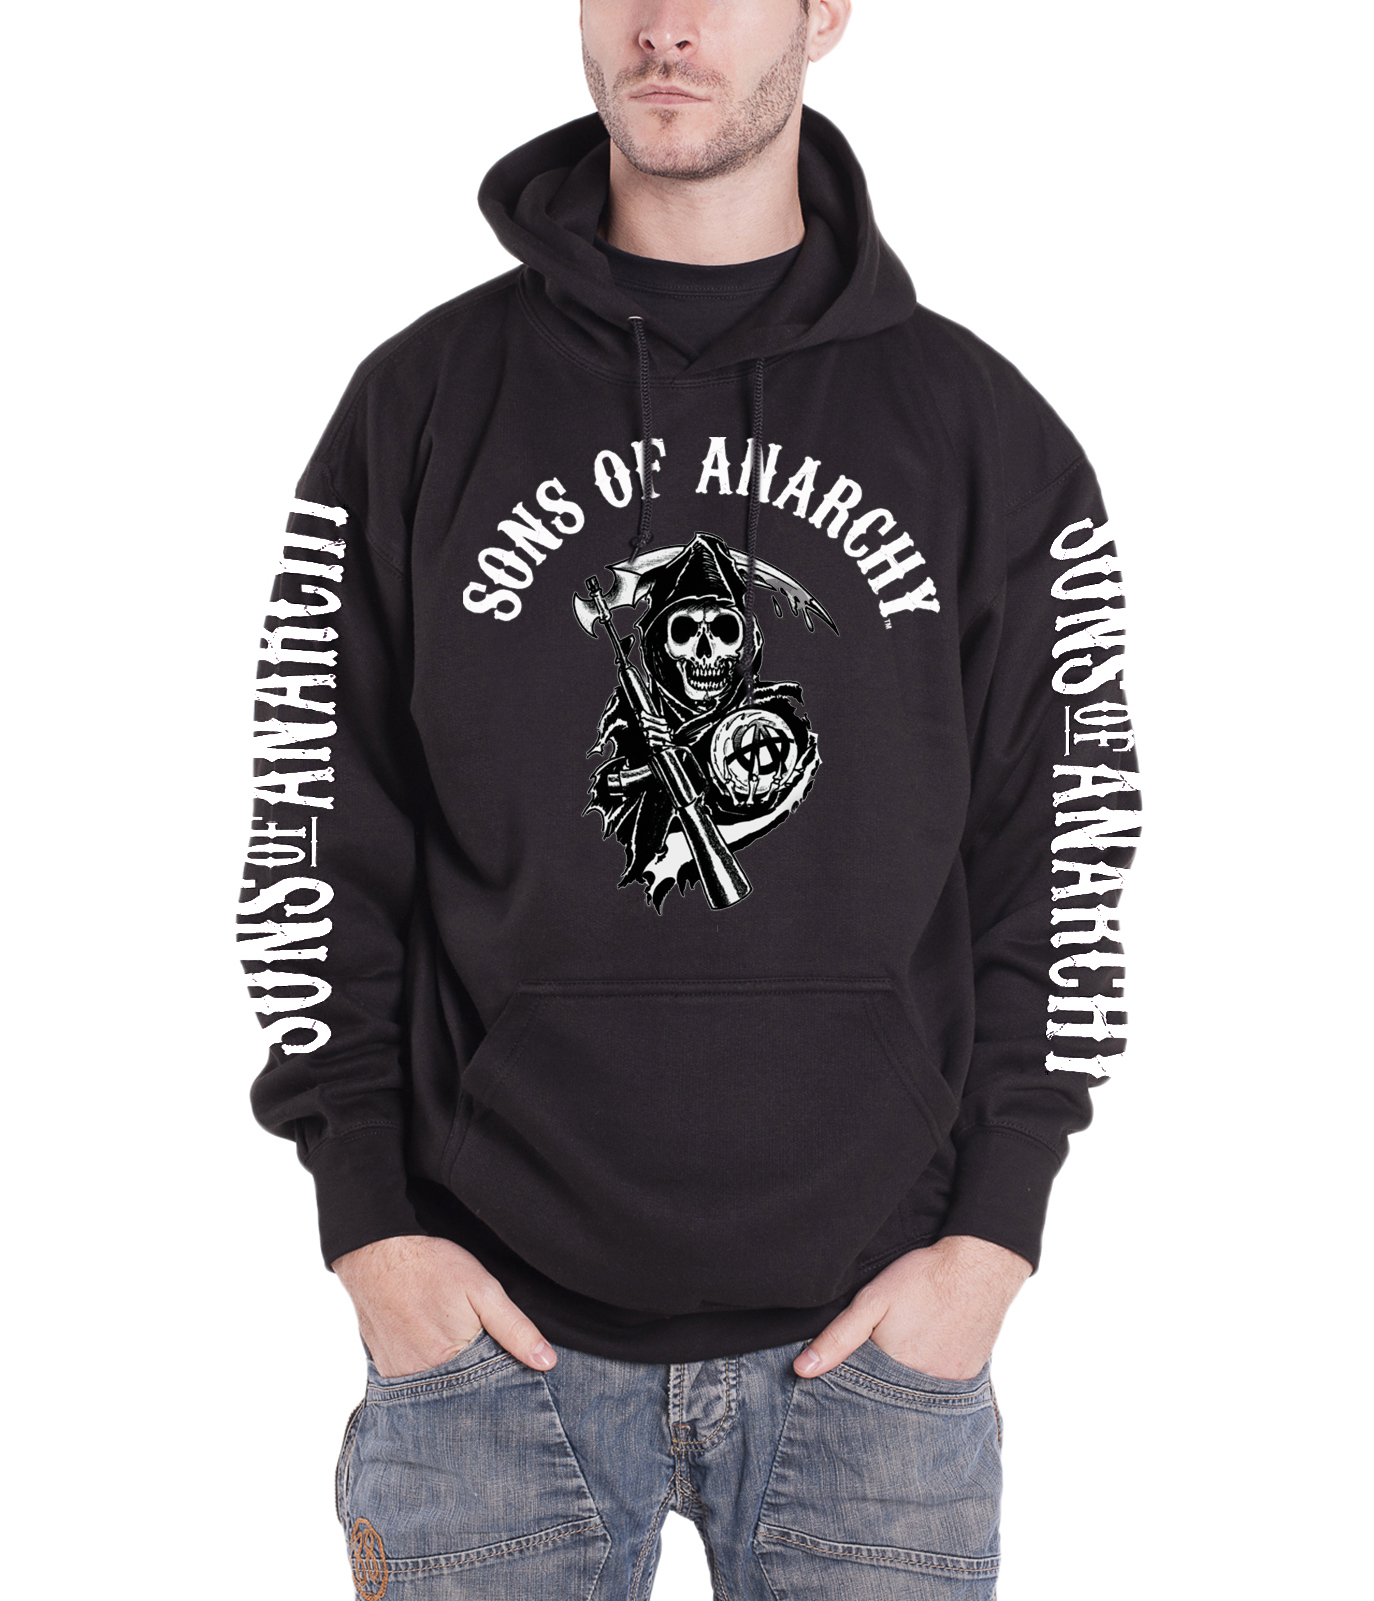 Sons of anarchy hoodie official